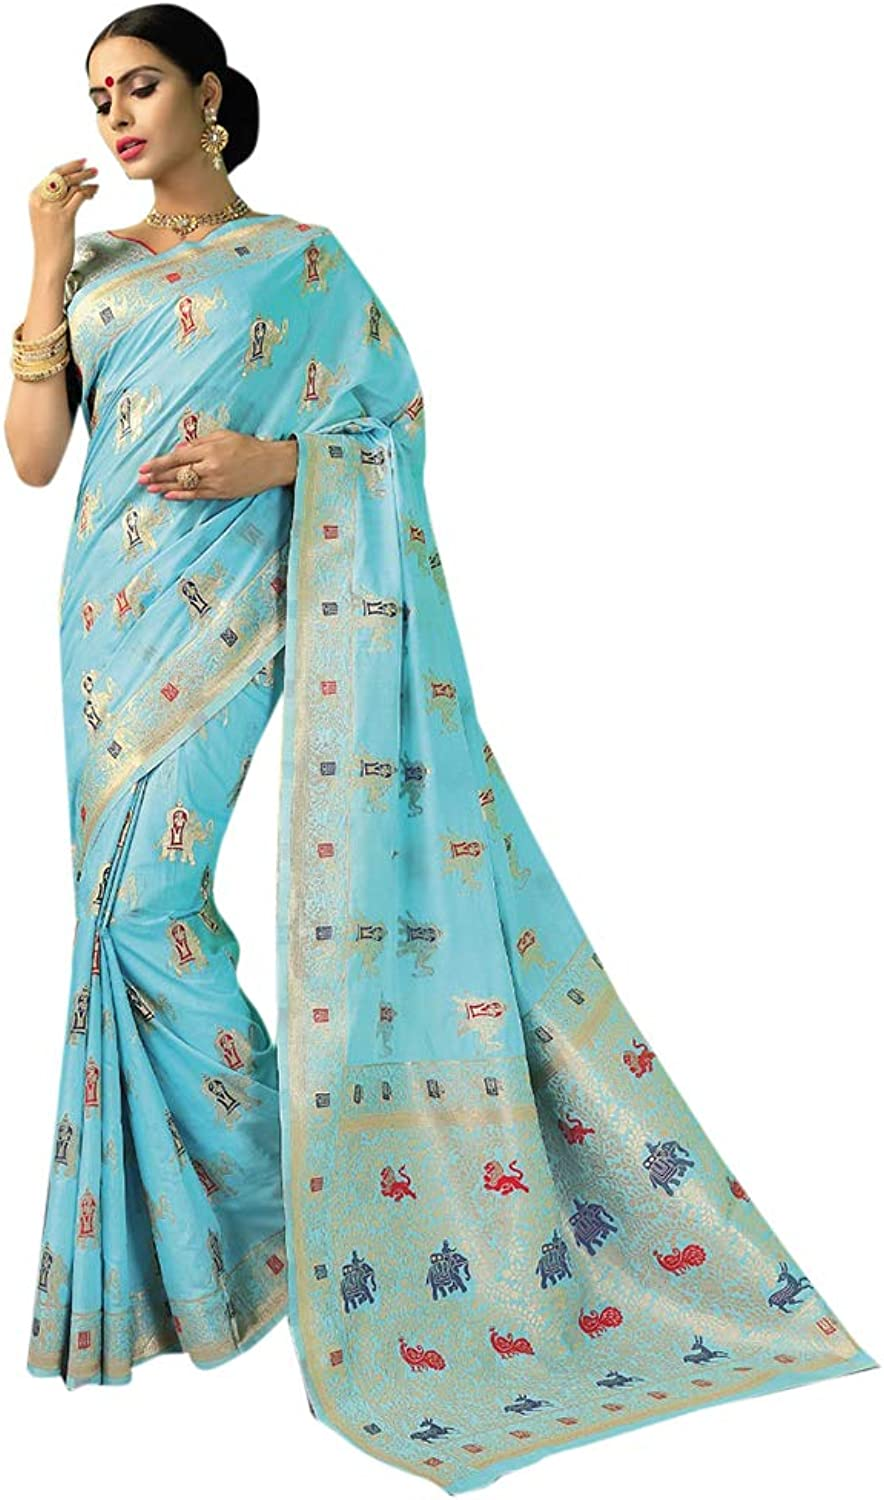 bluee Designer Handwoven Chanderi Silk Sari with Blouse for Women Indian Ethnic Party wear Saree 7629